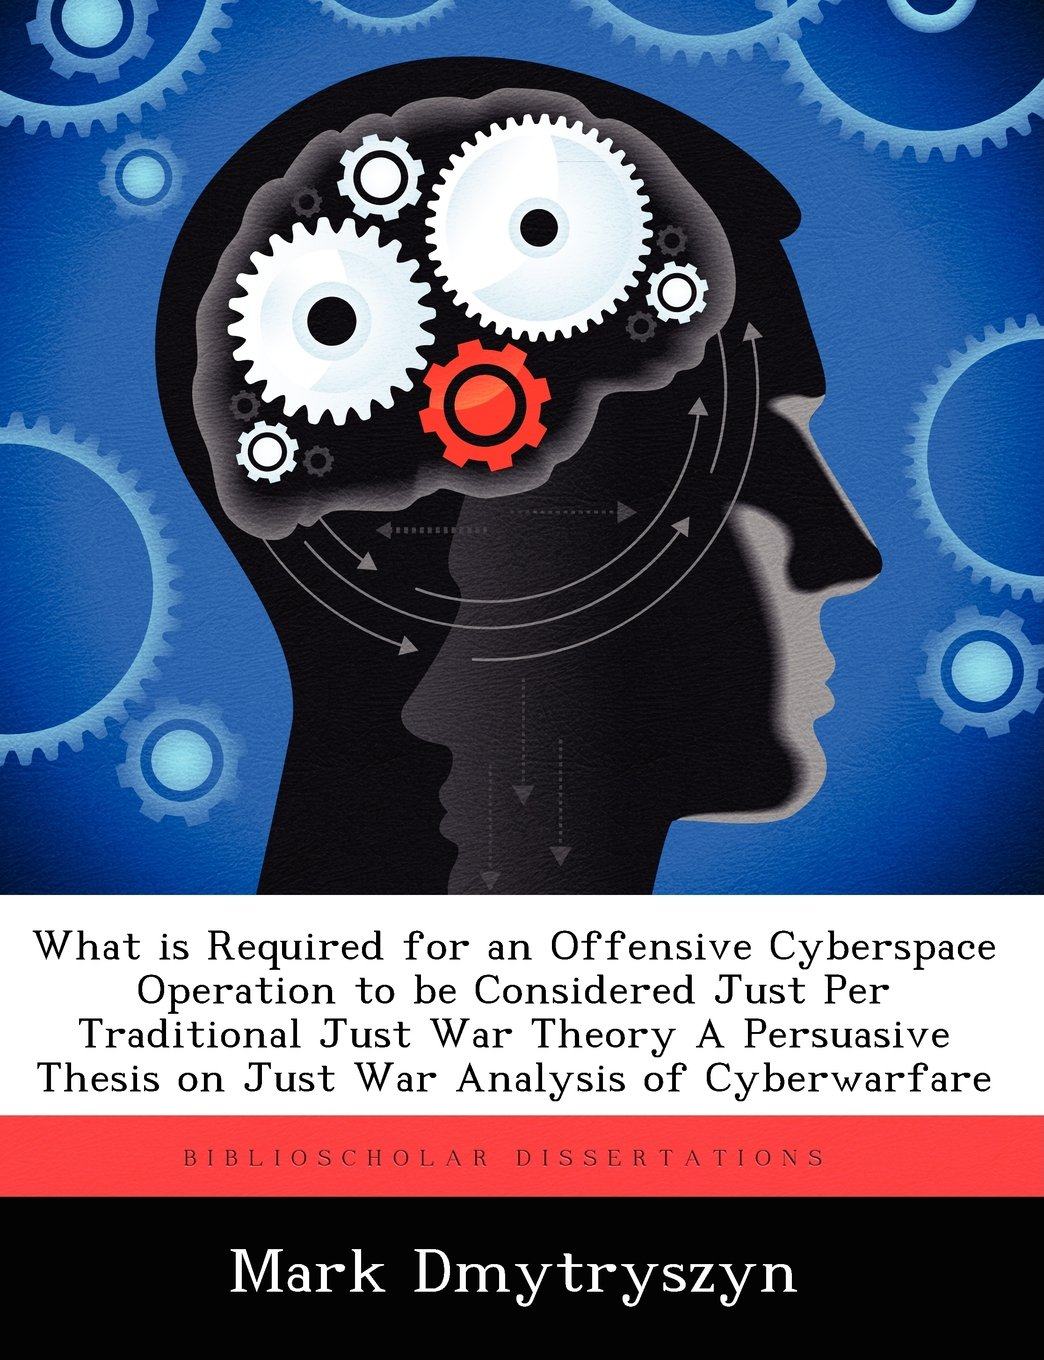 What is Required for an Offensive Cyberspace Operation to be Considered Just Per Traditional Just War Theory A Persuasive Thesis on Just War Analysis of Cyberwarfare ebook